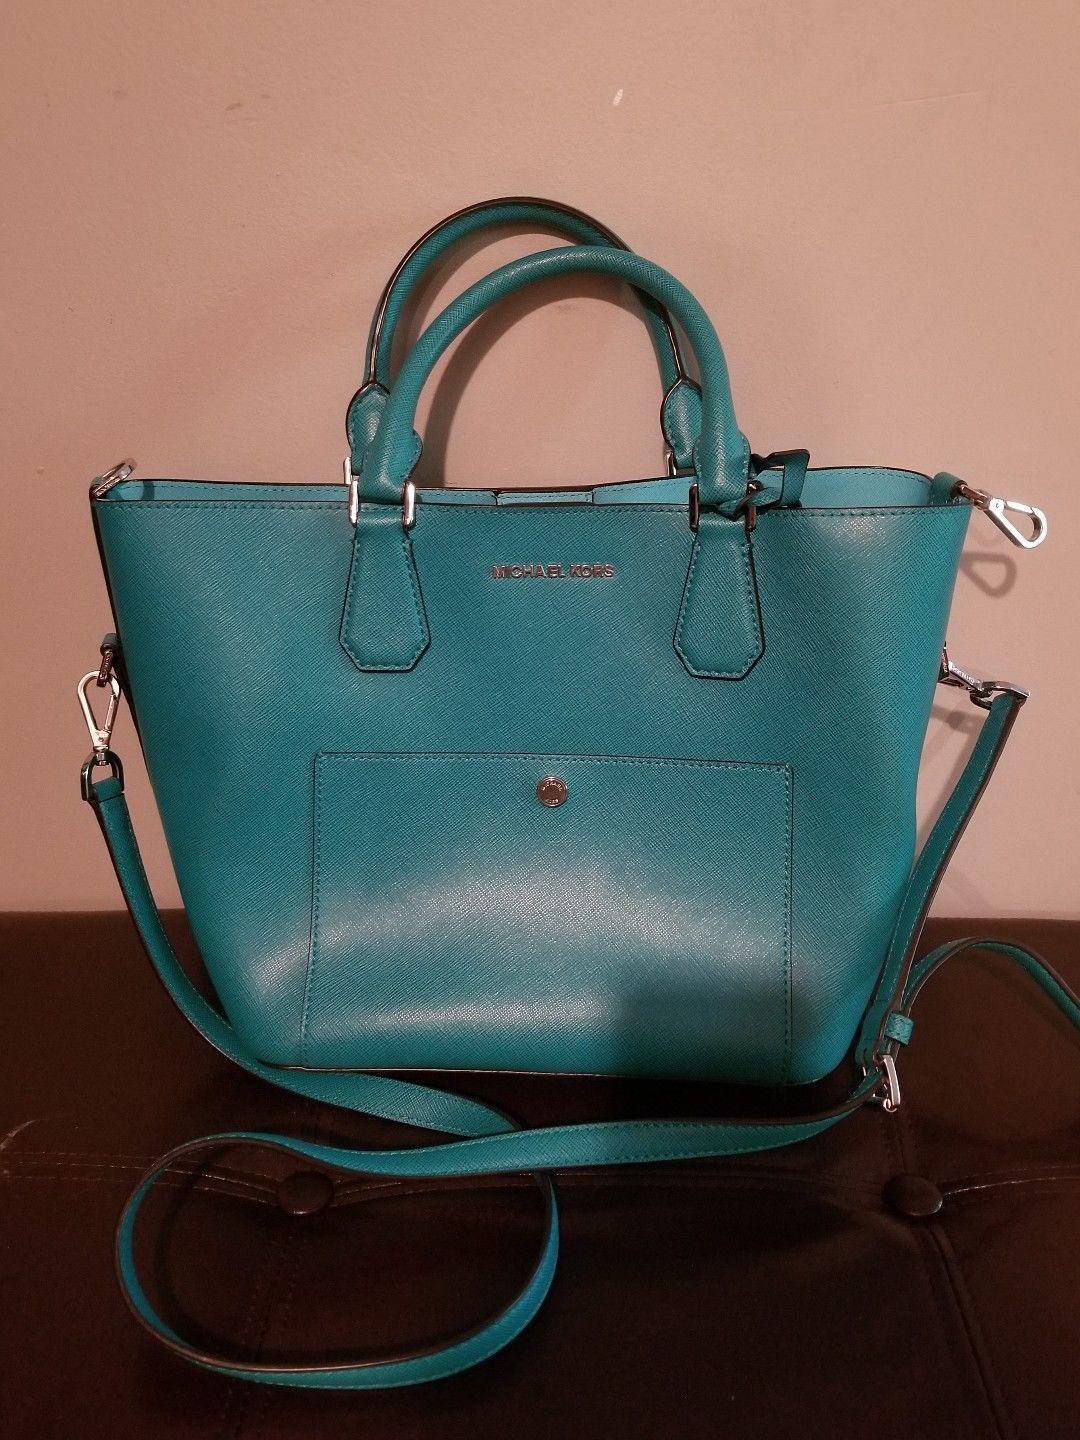 a8e8ba95da25bc MICHAEL KORS Large Saffiano Greenwich and 50 similar items. S l1600